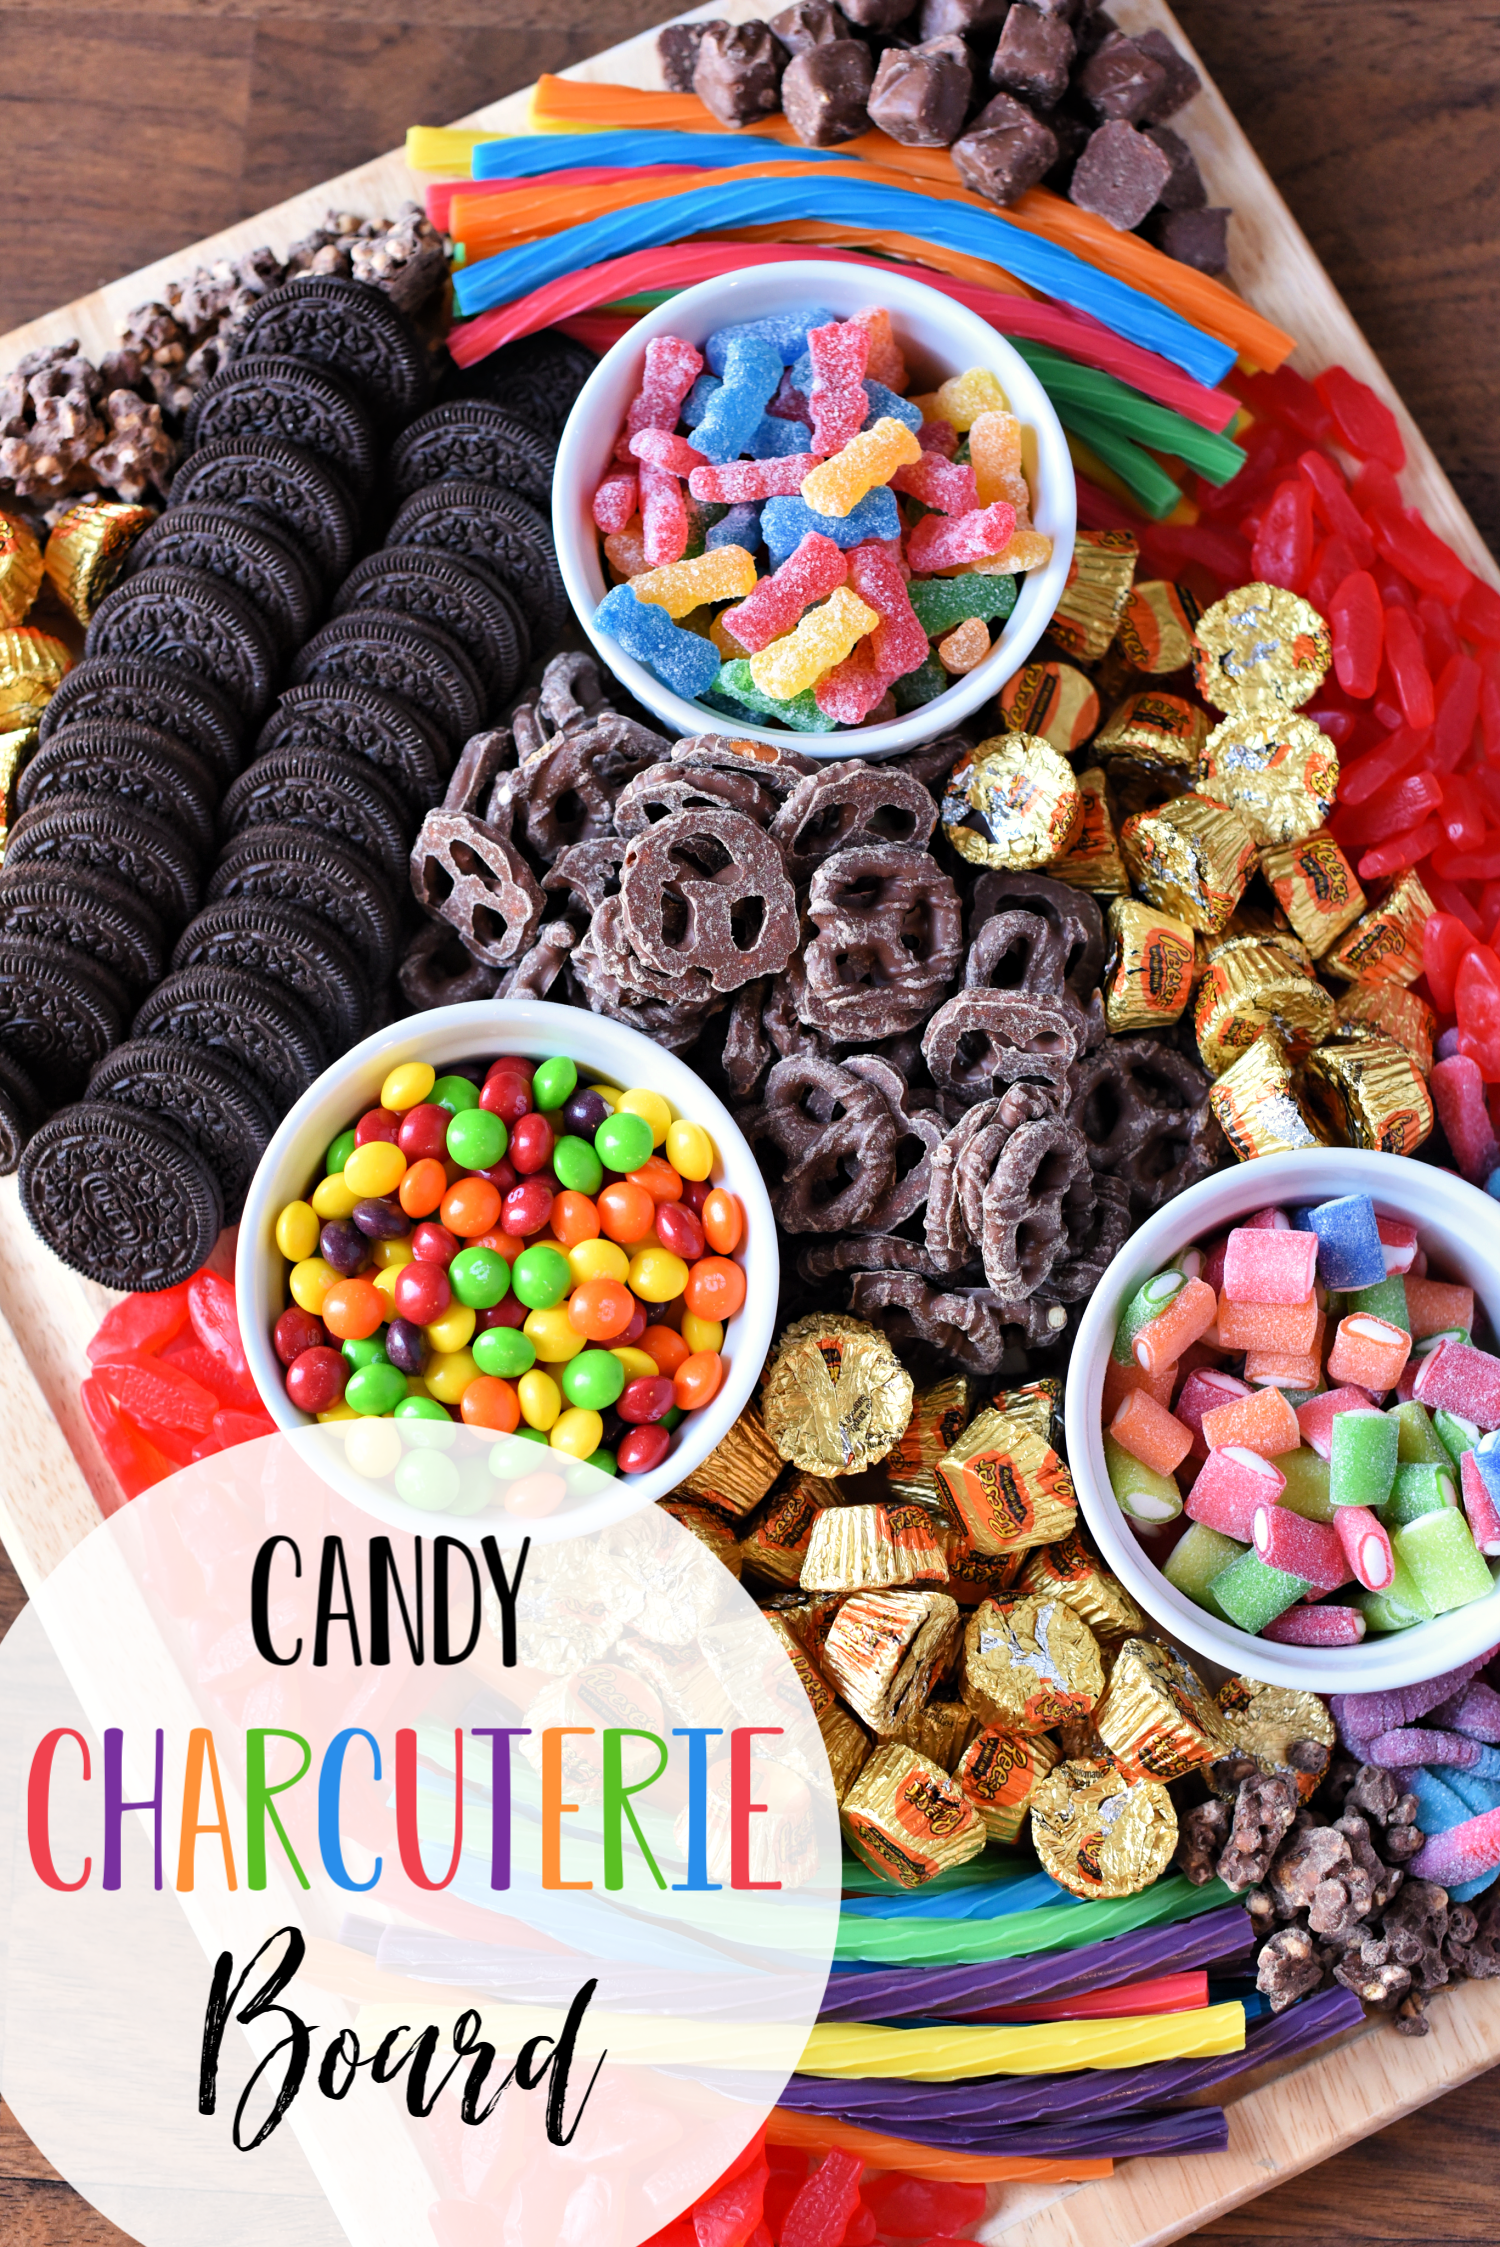 Candy Charcuterie Board-This fun spin on an old classic is perfect for a kid's birthday party or any party you're throwing. If you're looking for fun and creative charcuterie board ideas, this is it! #charcuterieboard #birthdaypartyideas #birthdaypartyfood